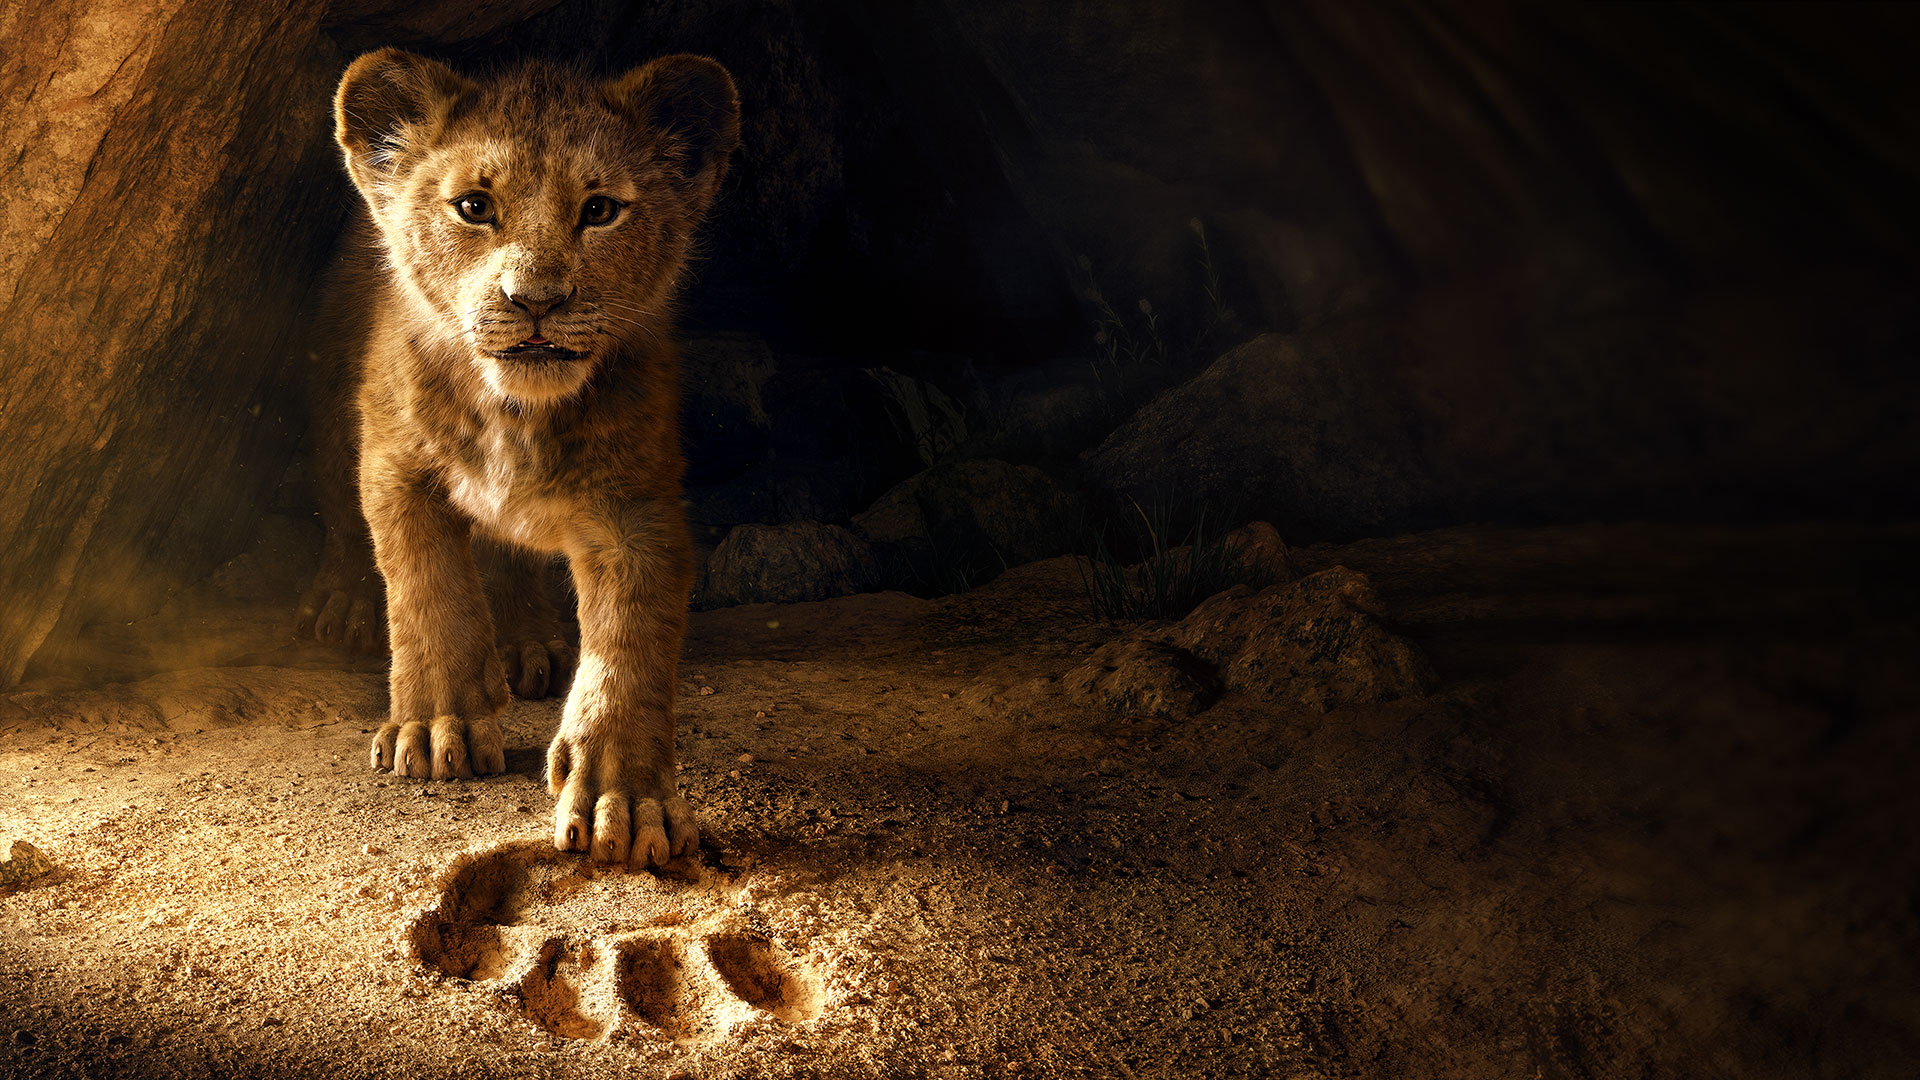 Quot Lion King Quot Sweeps Box Office Expectations Gateway